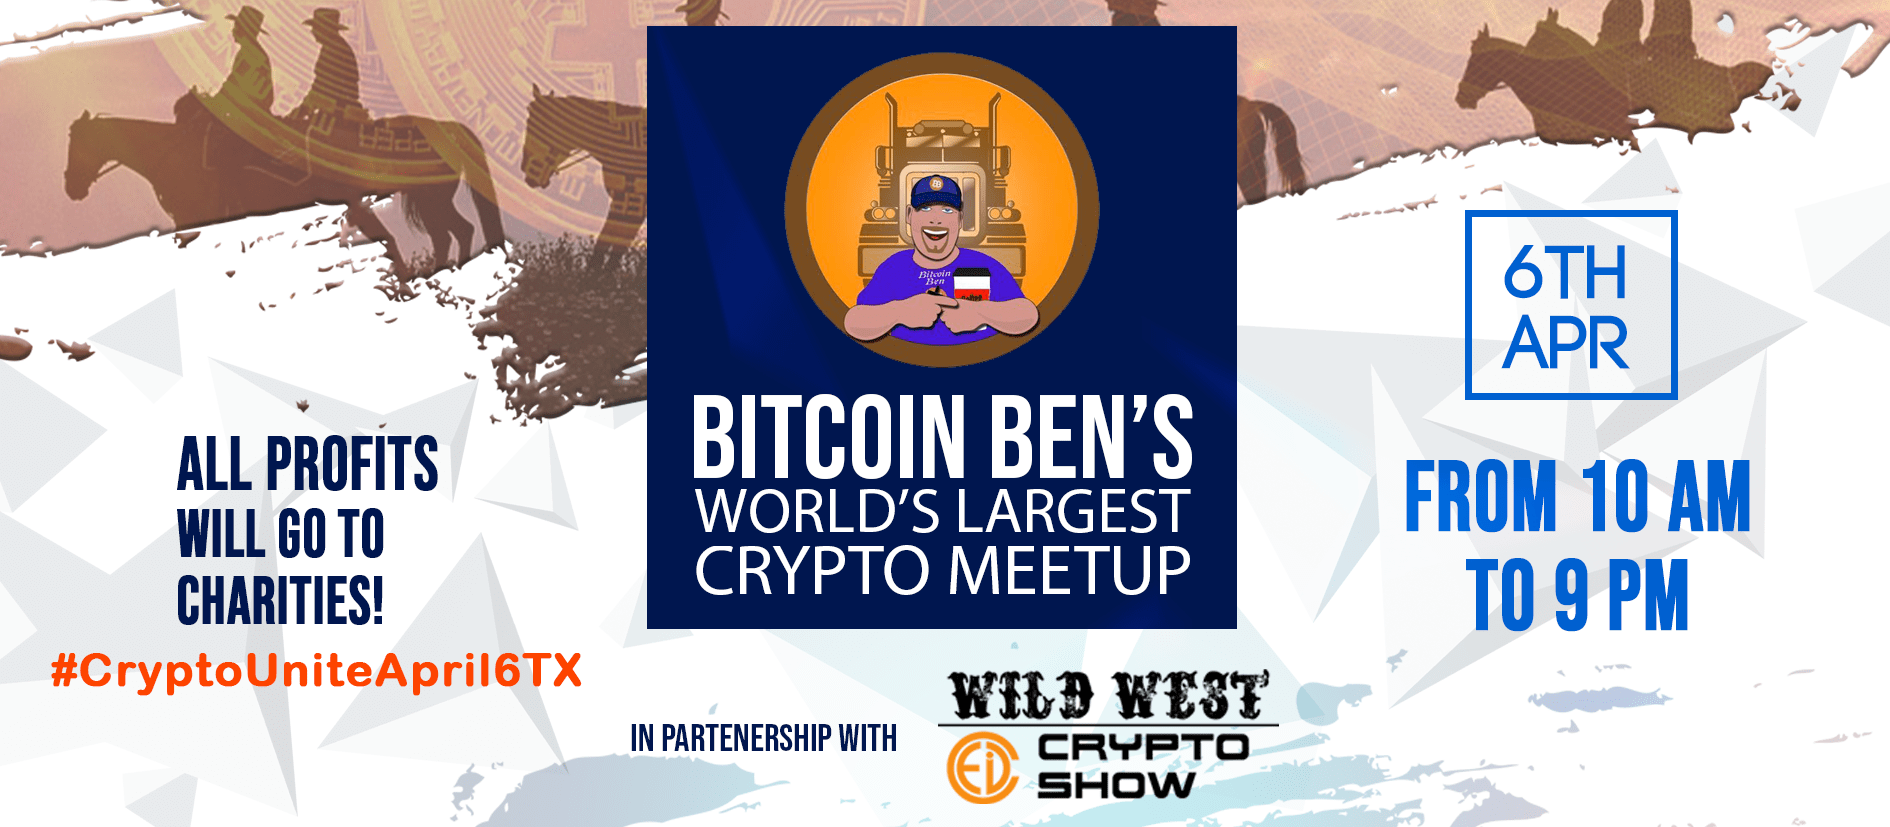 Bitcoin-ben-crypto-meetup